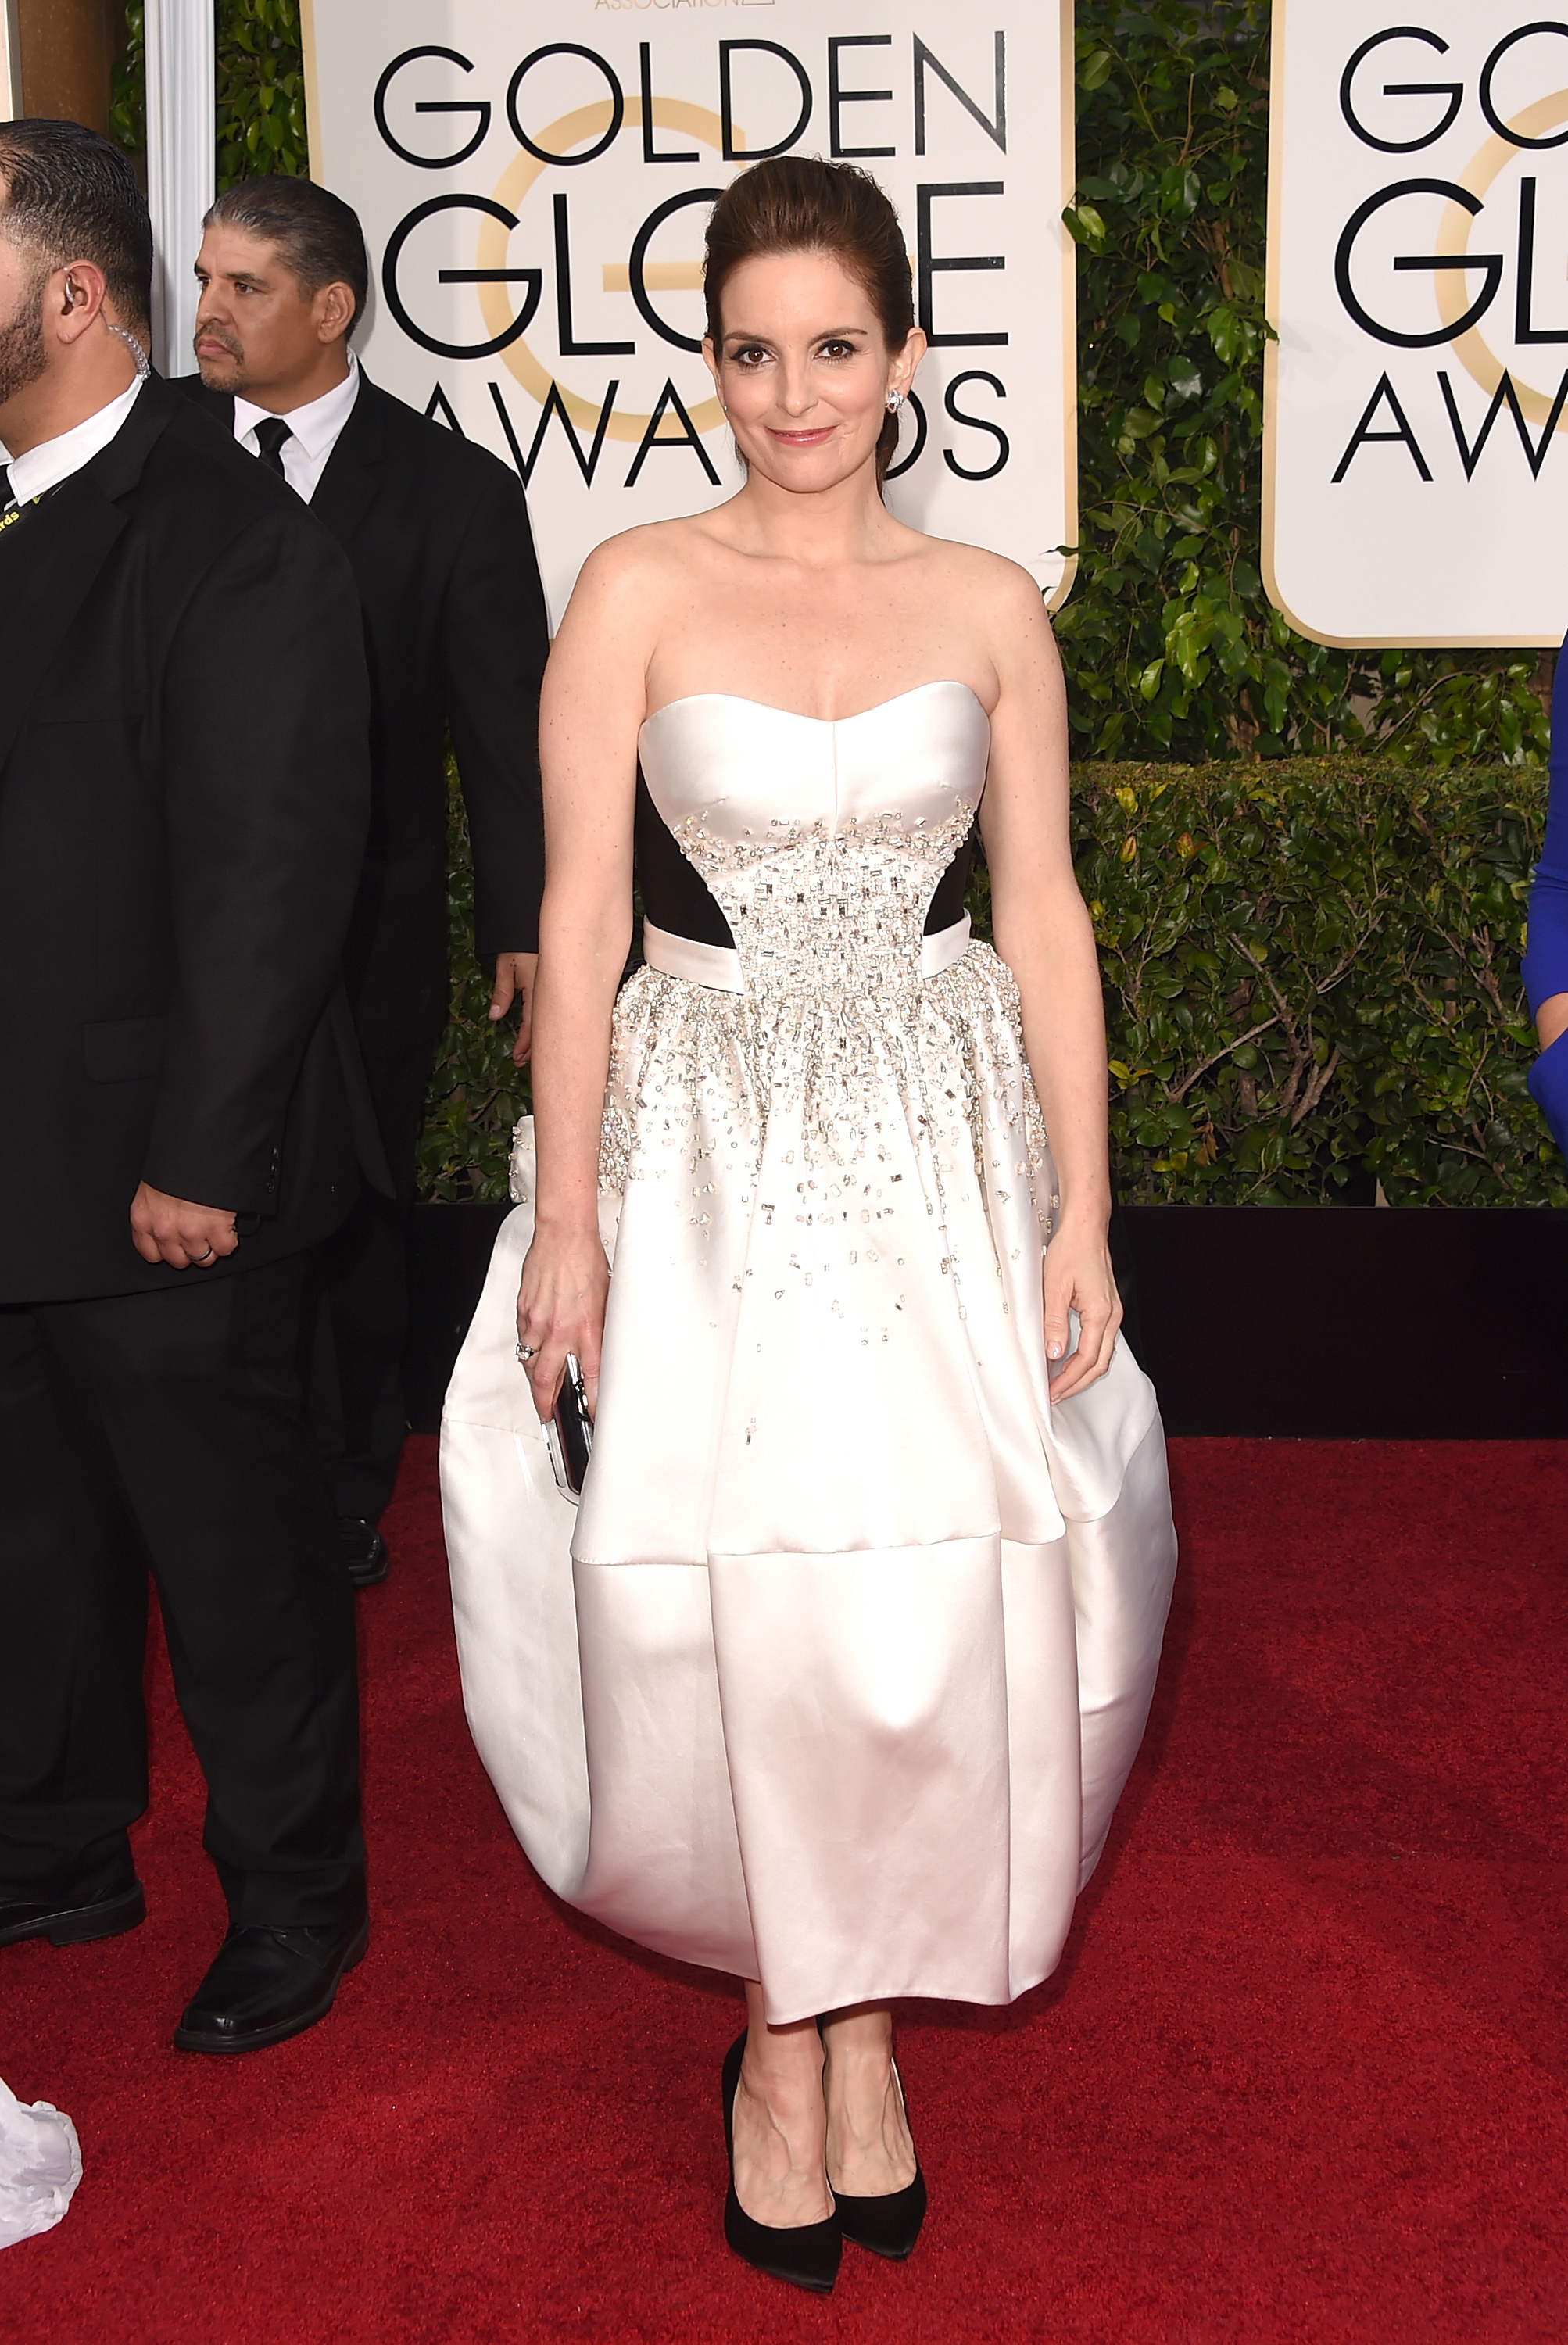 Unfortunately, Tina Fey's daring choice at the Golden Globes was a fashion flop (Photo: Getty).